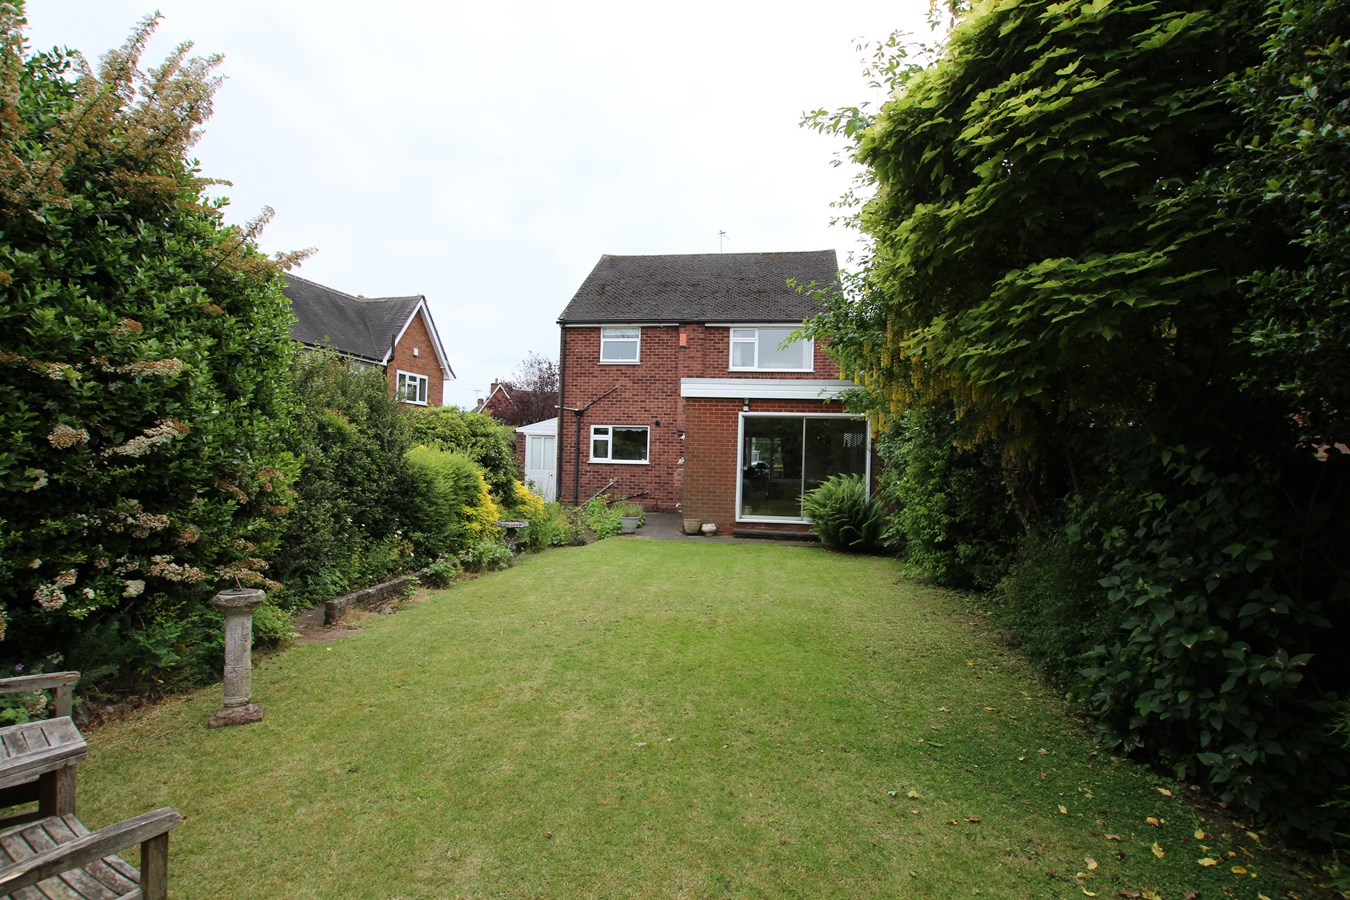 3 Bedroom Detached House For Sale In Shenstone